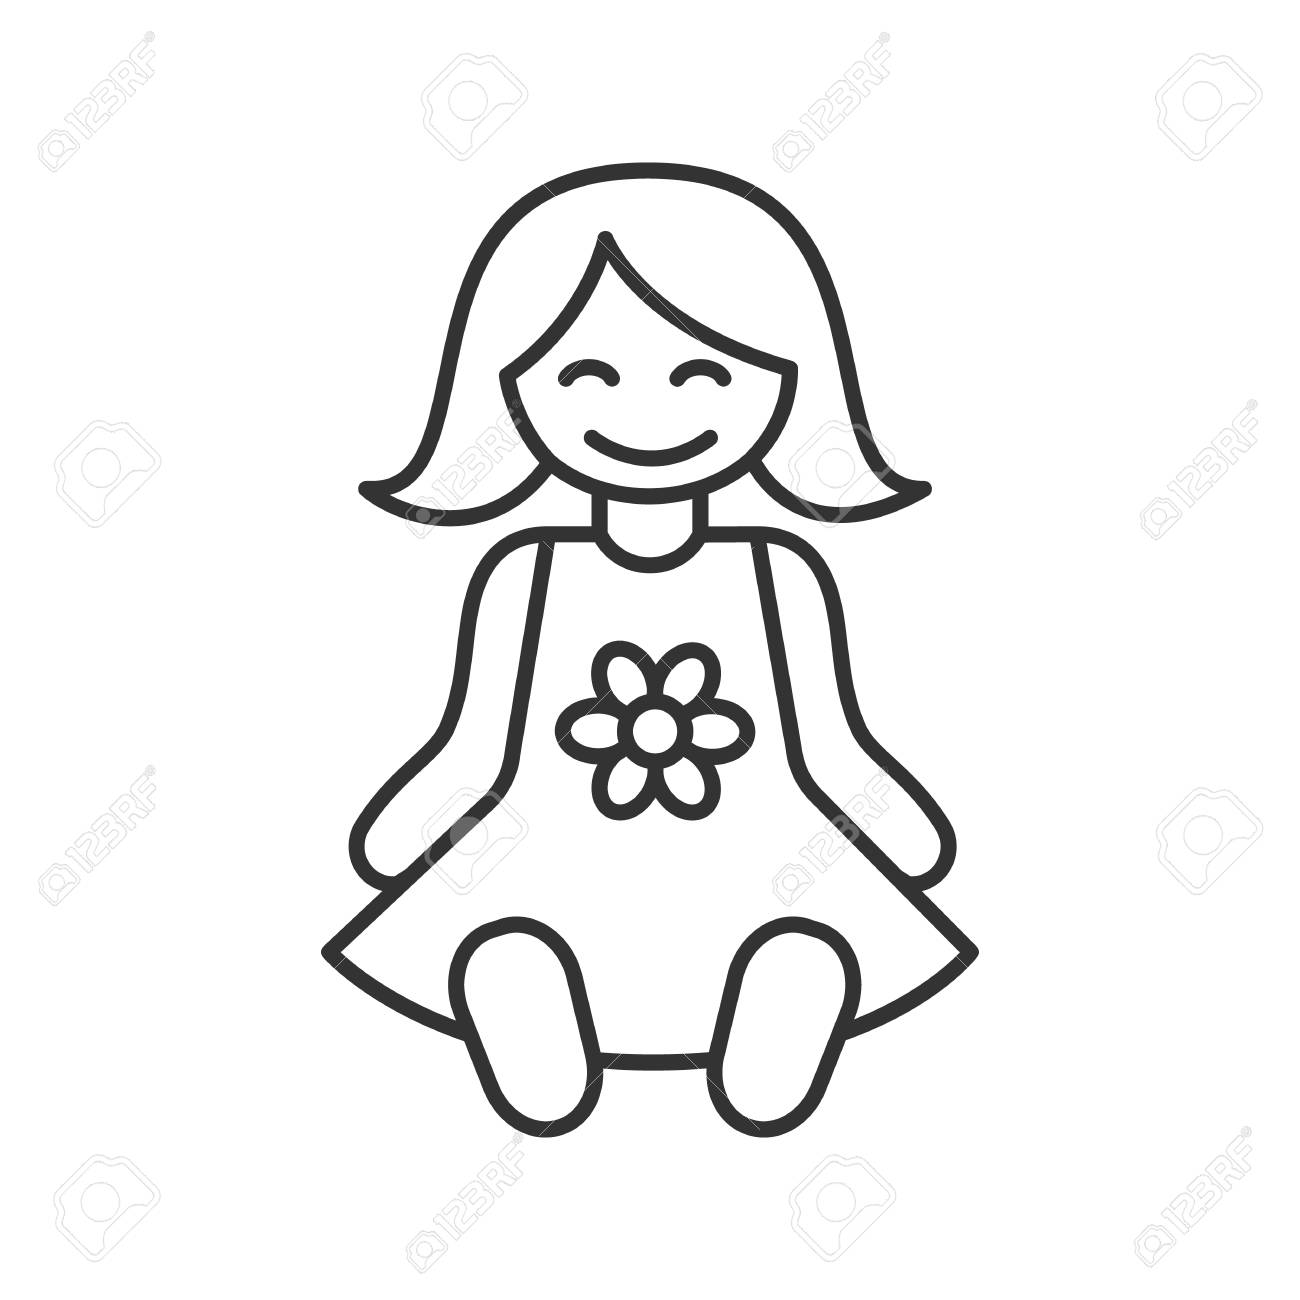 Baby doll linear icon thin line illustration contour symbol vector isolated outline drawing